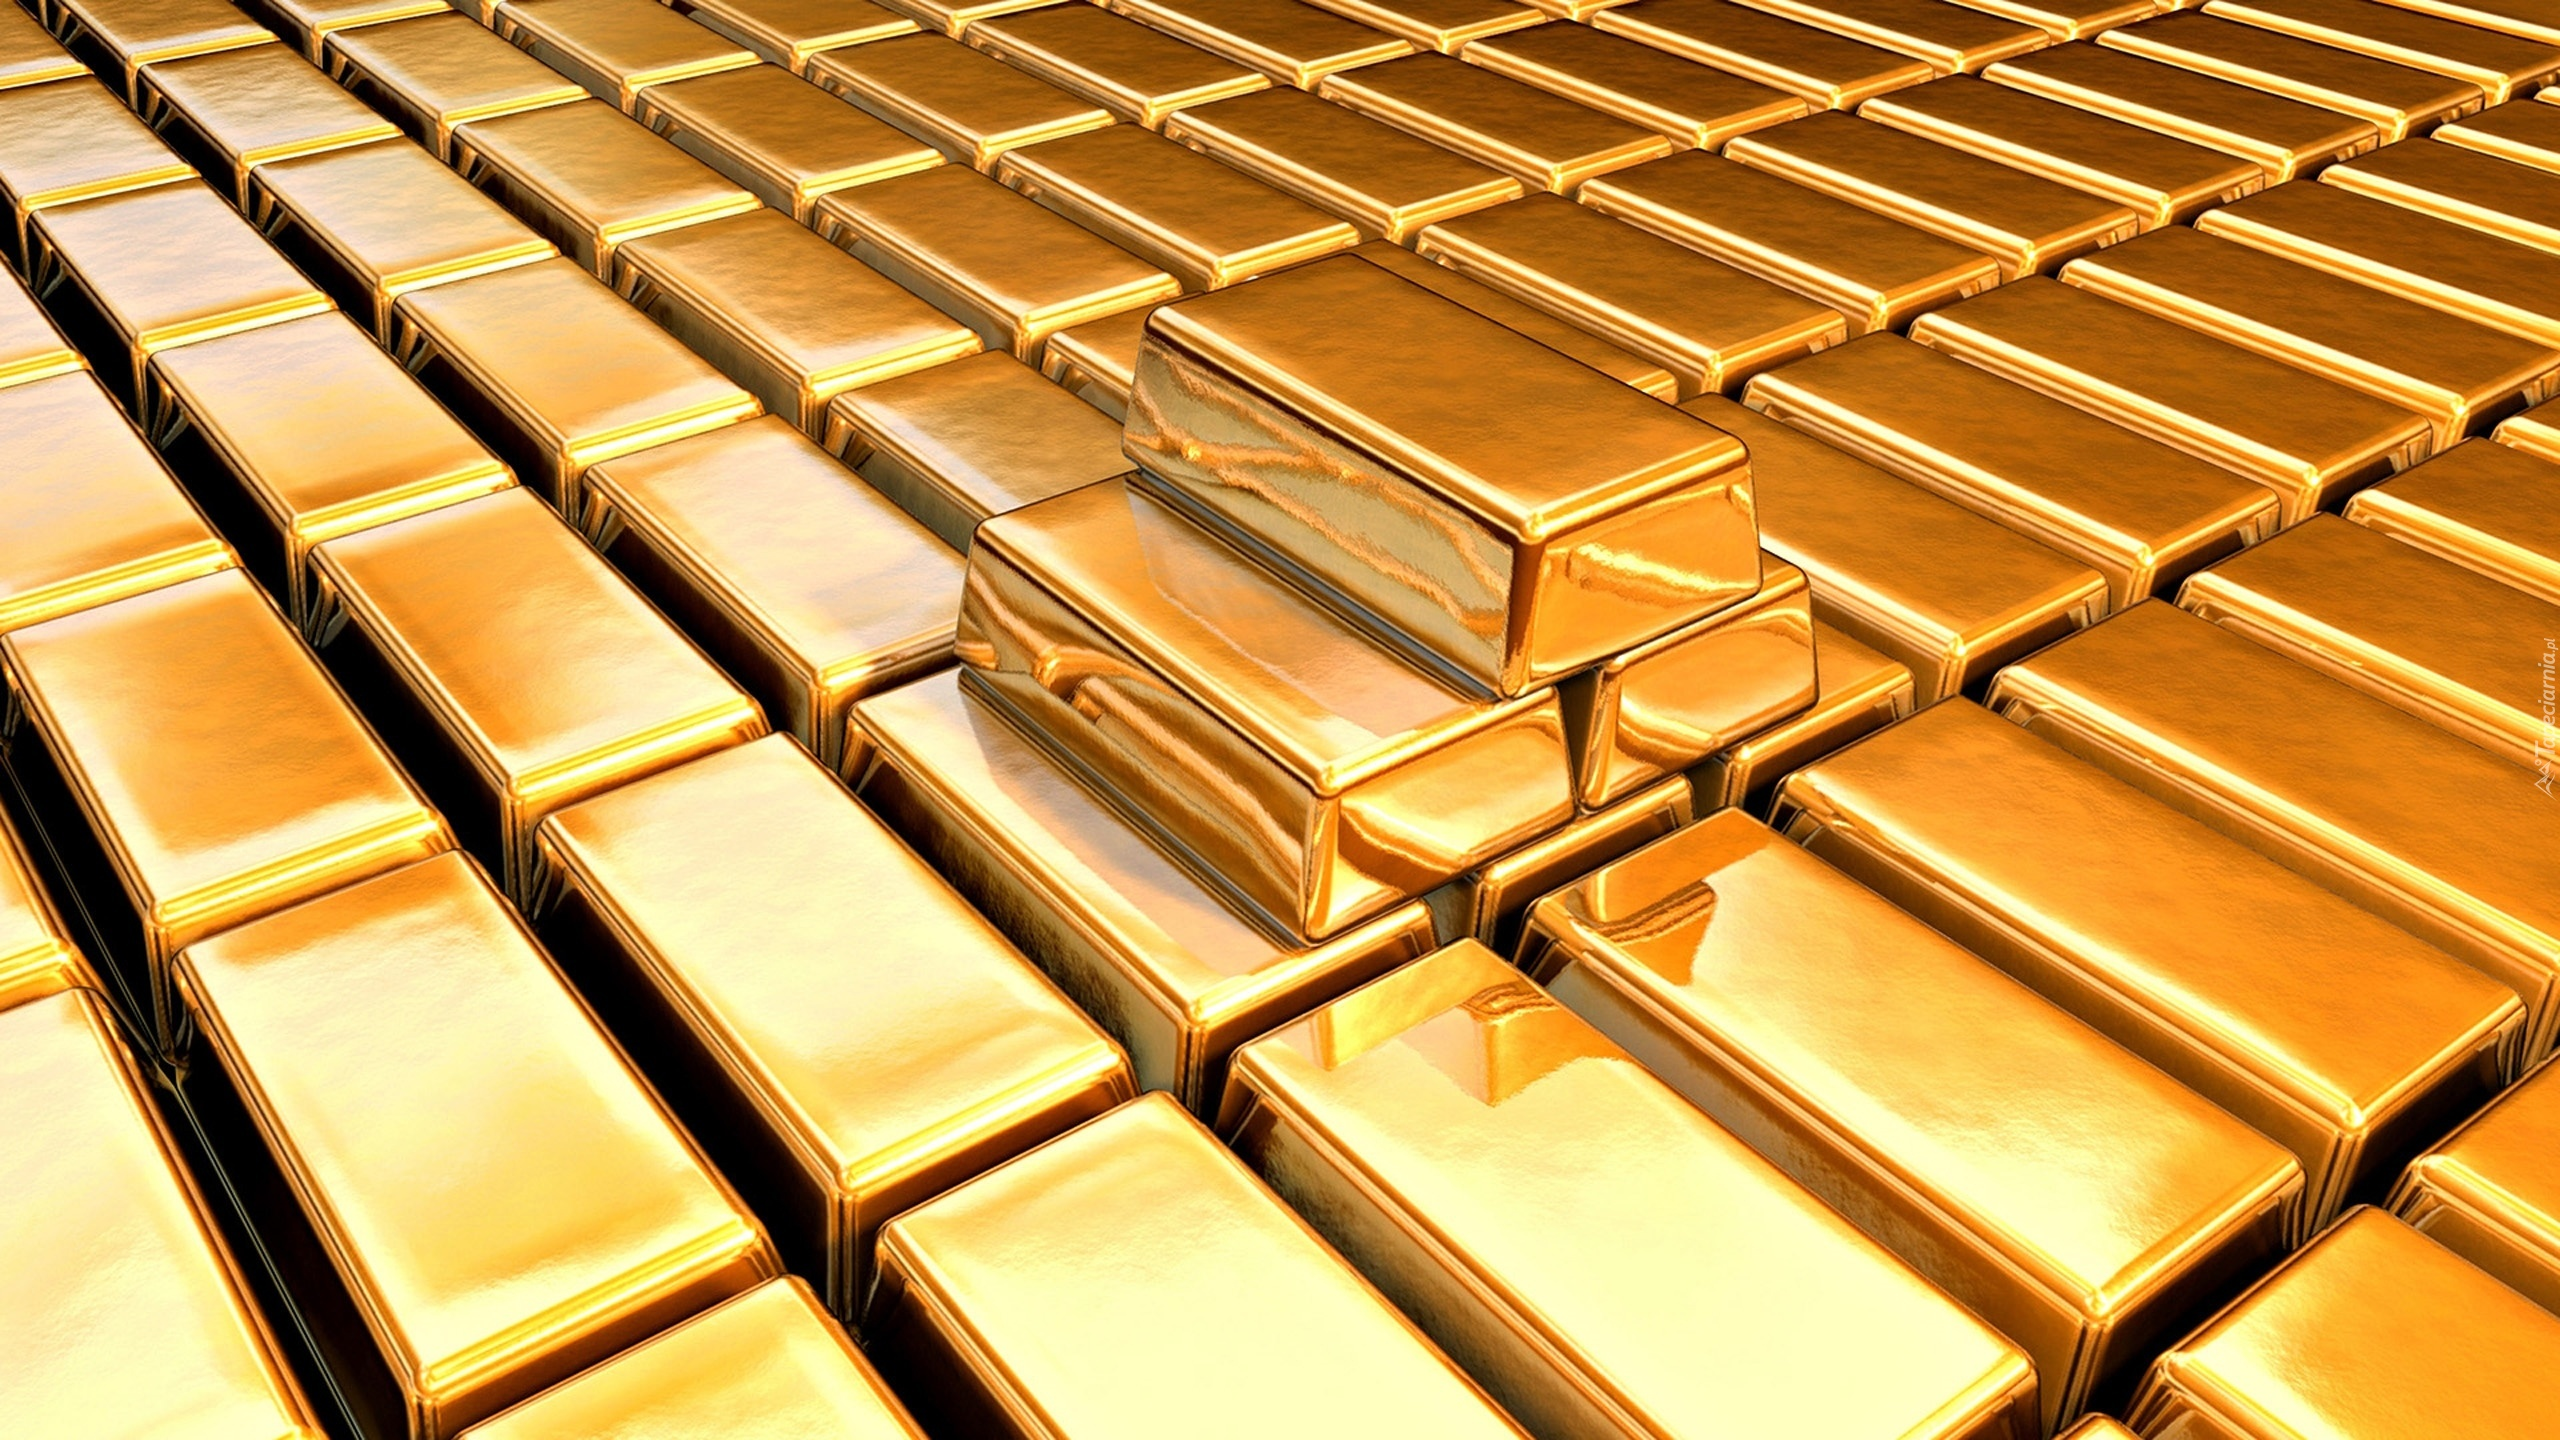 1.3 kg gold seized at Hyderabad airport